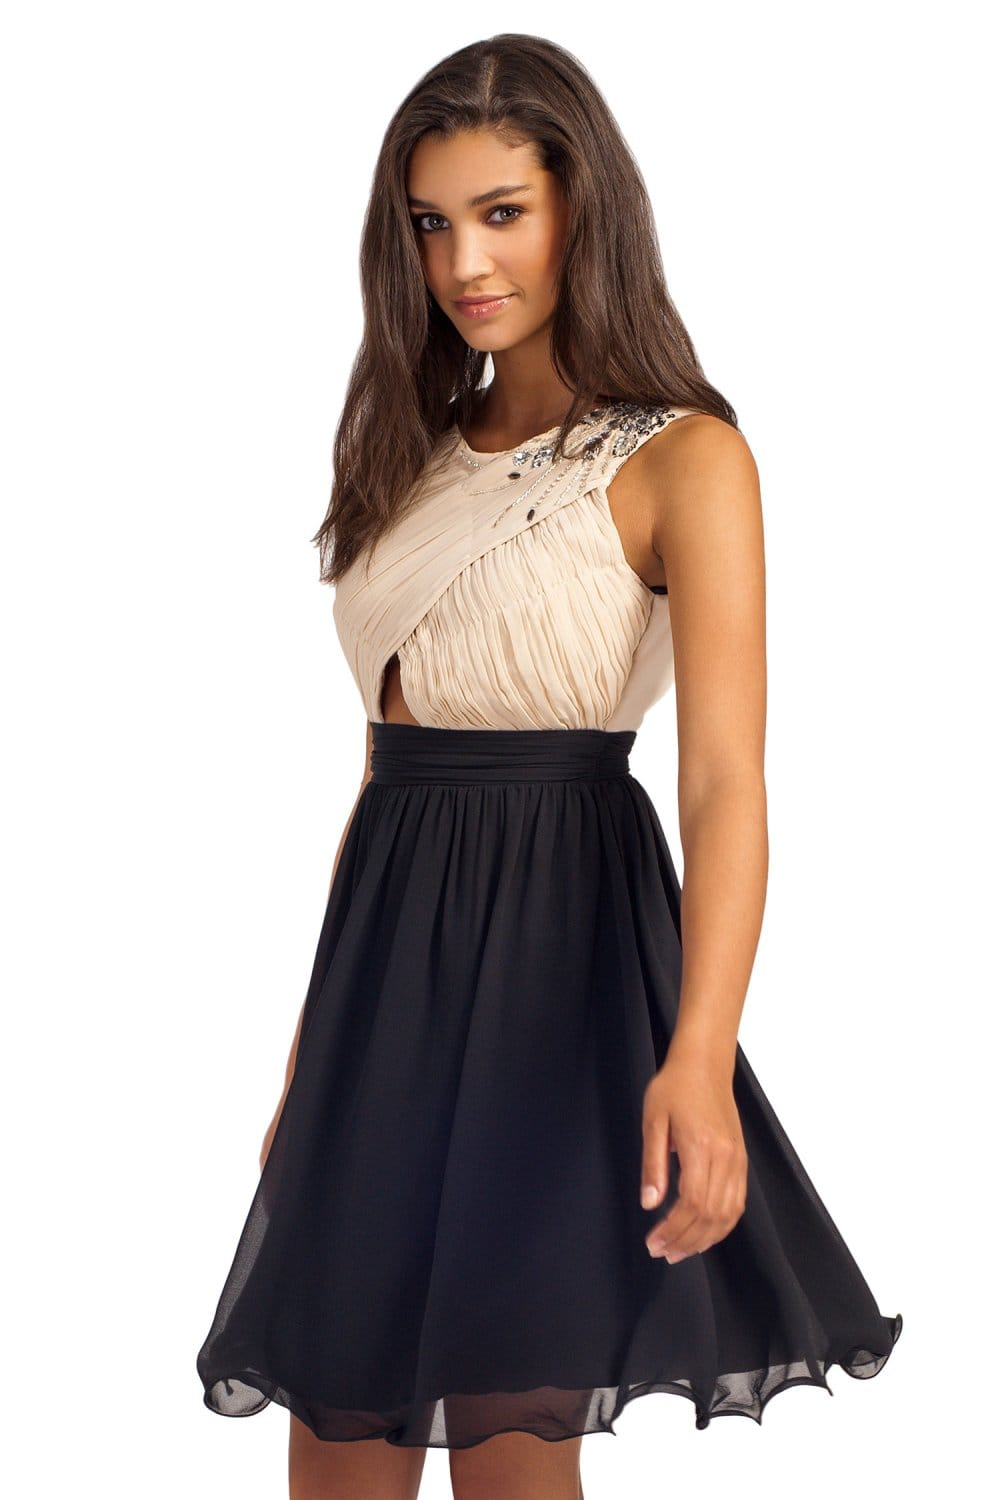 Cream & Black Sleeveless Embellished Pleated Prom Dress